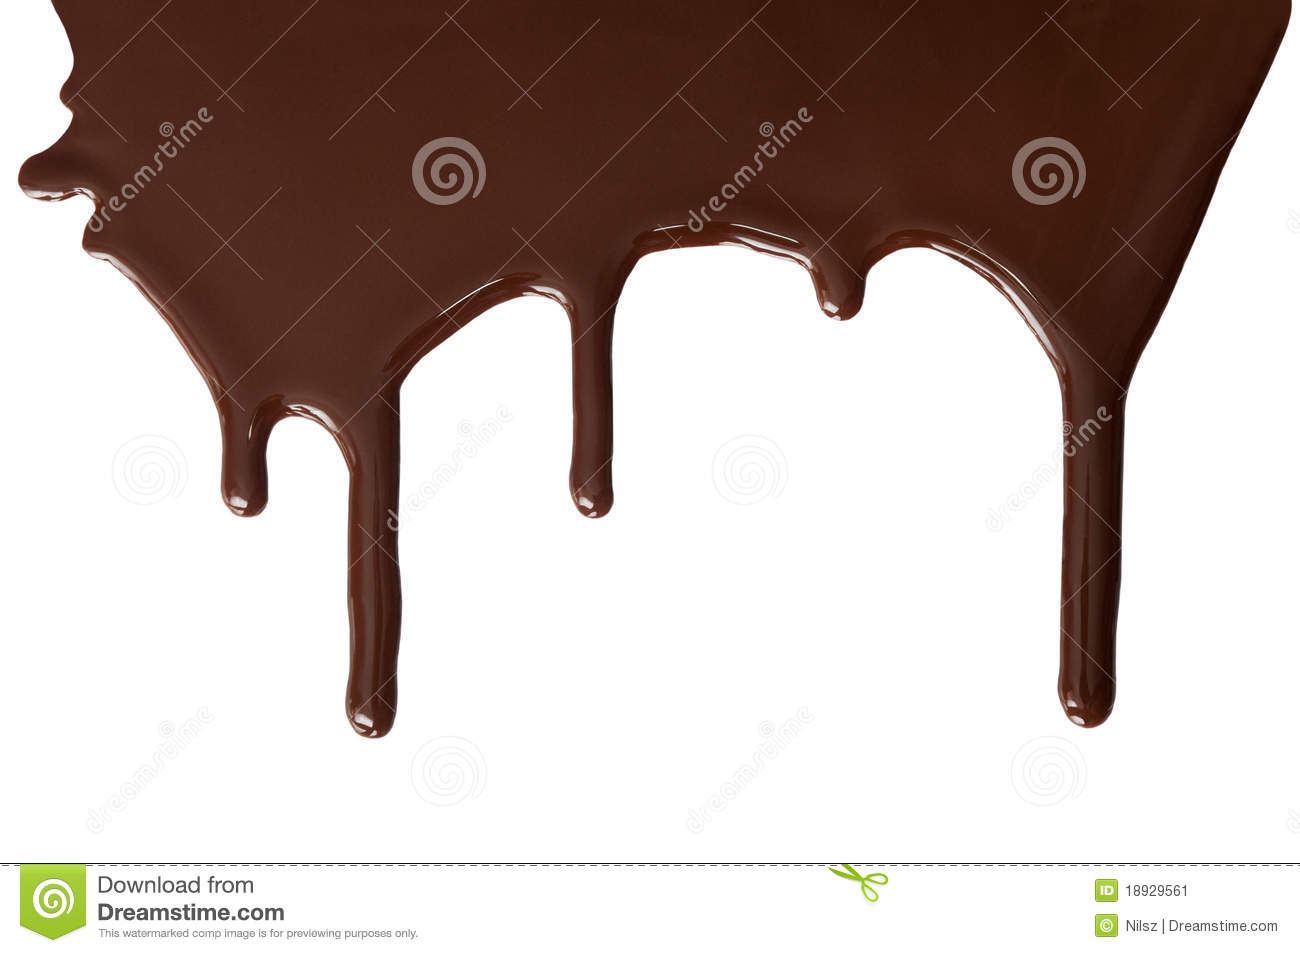 Melted Chocolate Stock Photos, Images, & Pictures - 8,241 Images